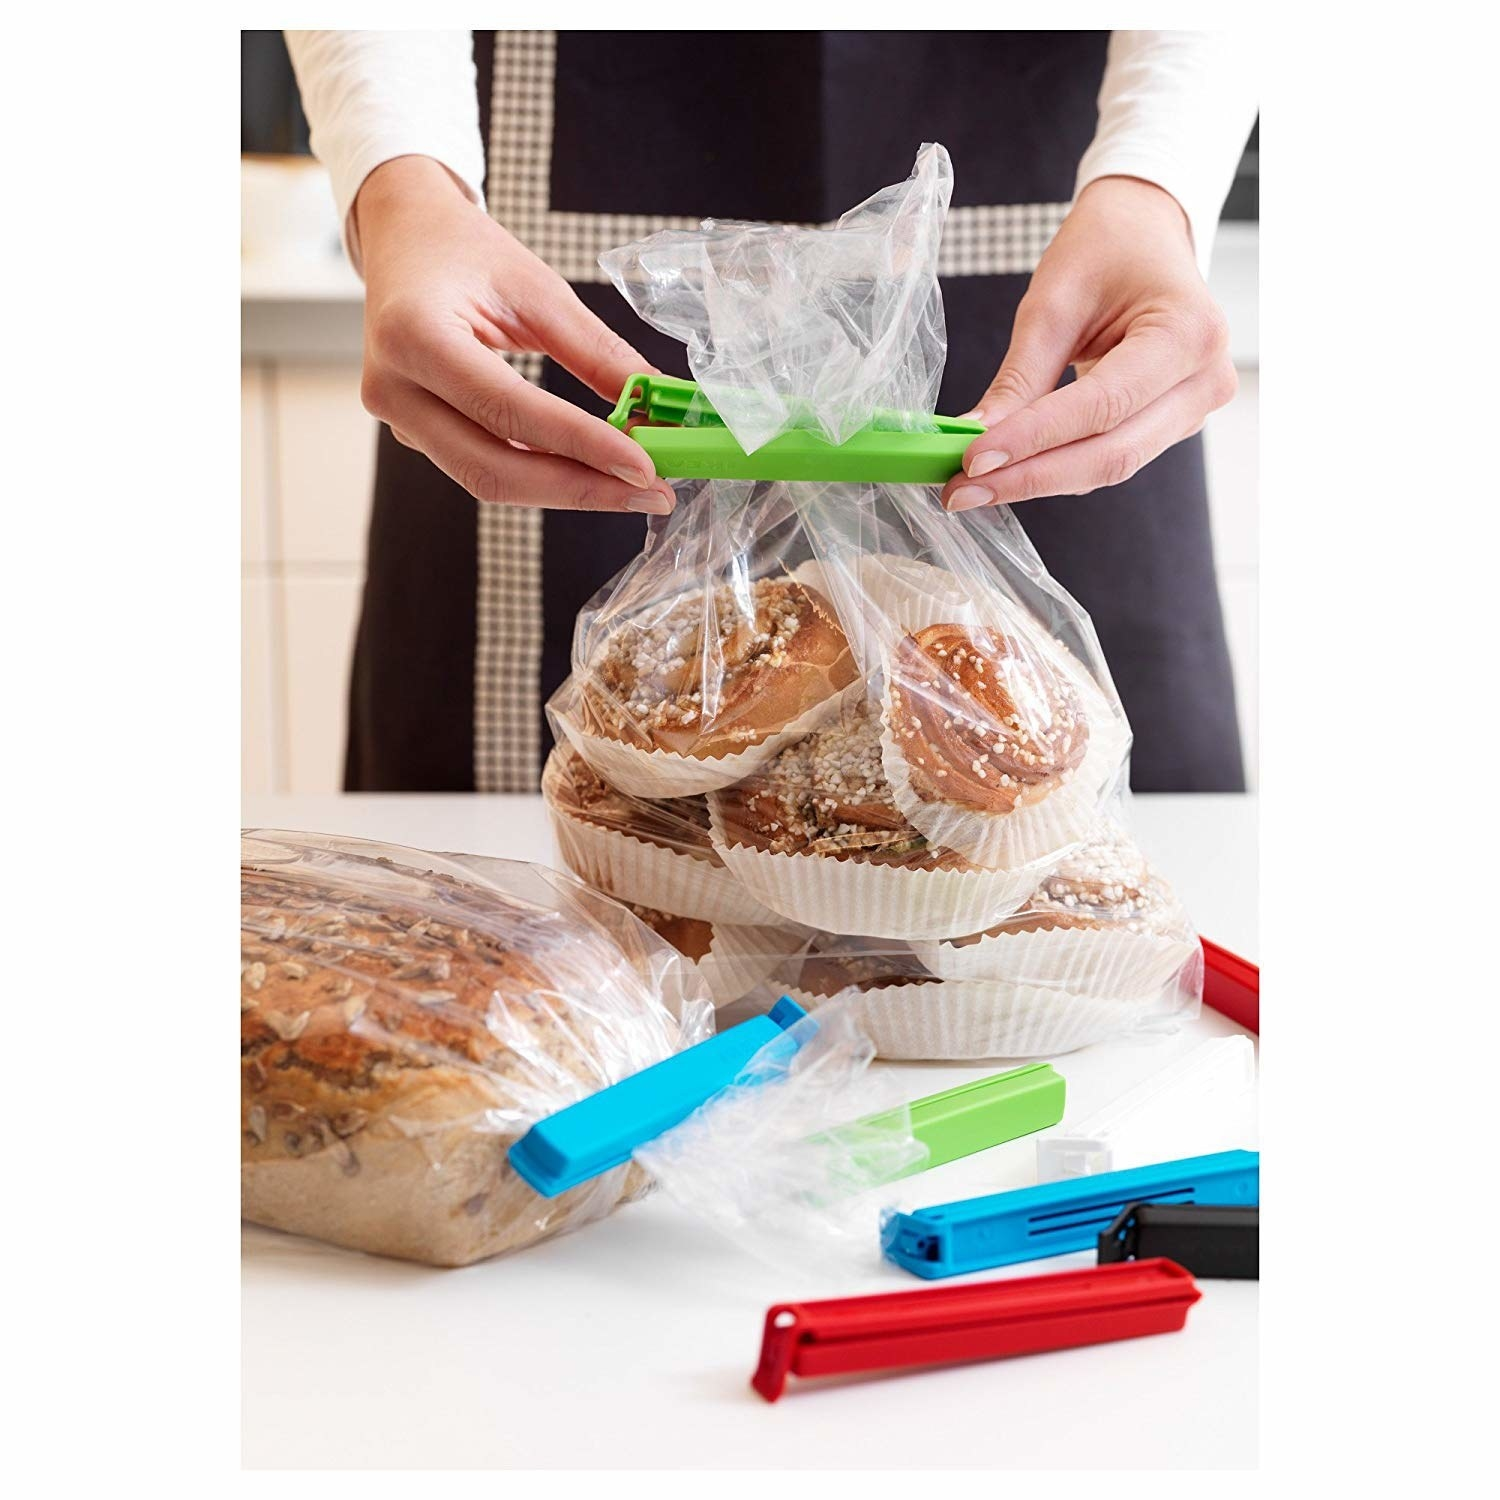 A set of bag sealing clips on a table next to a person closing a bag of bread rolls with the clips